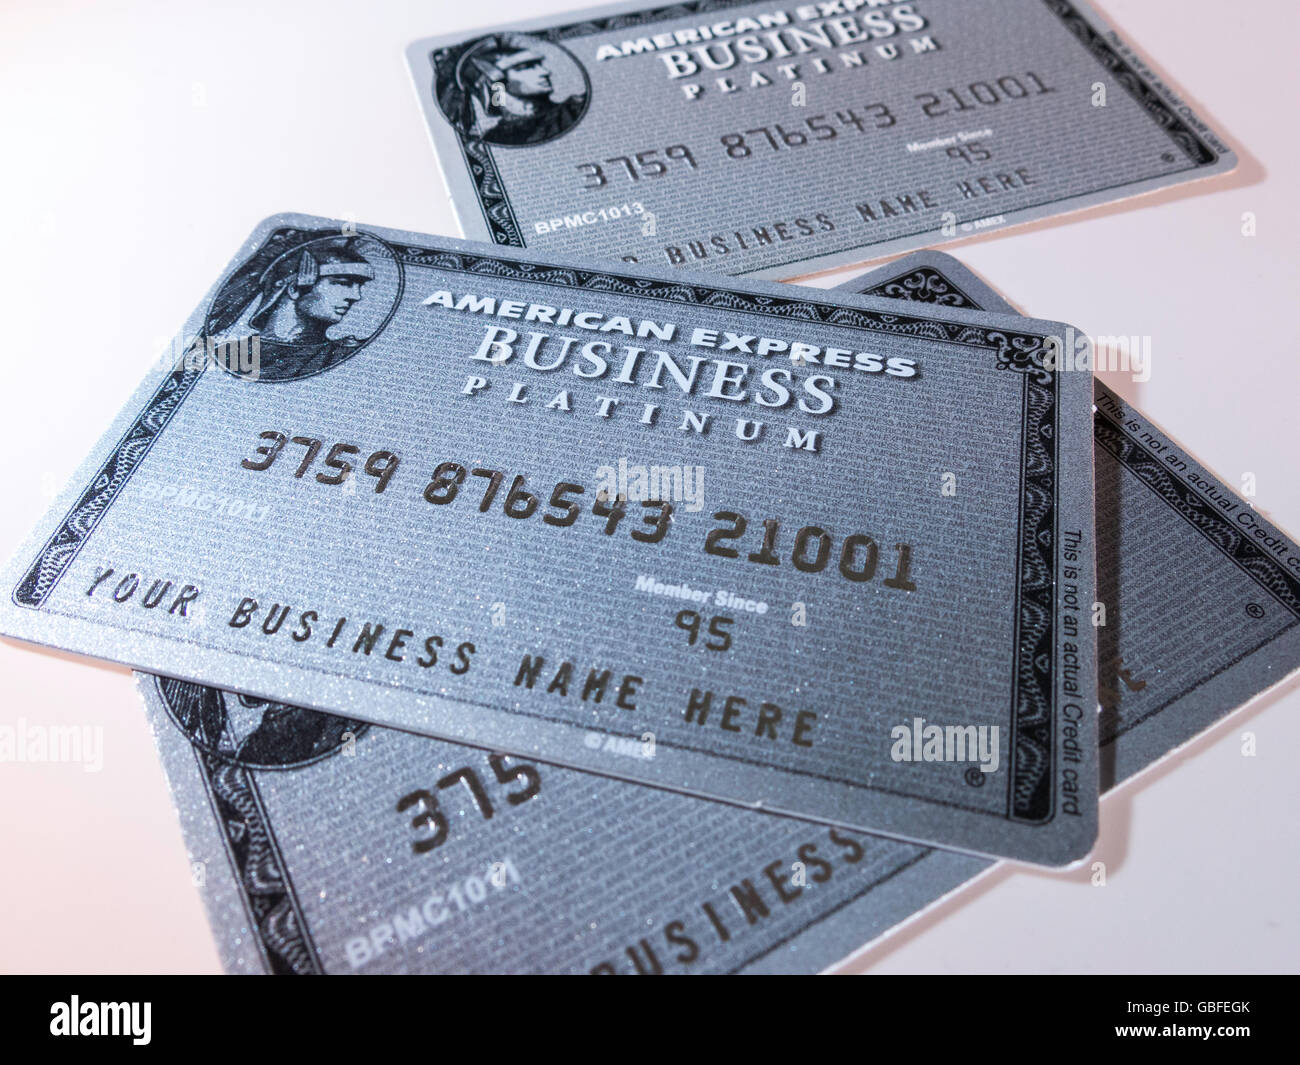 American Express Business Credit Cards Stock Photo, Royalty Free ...